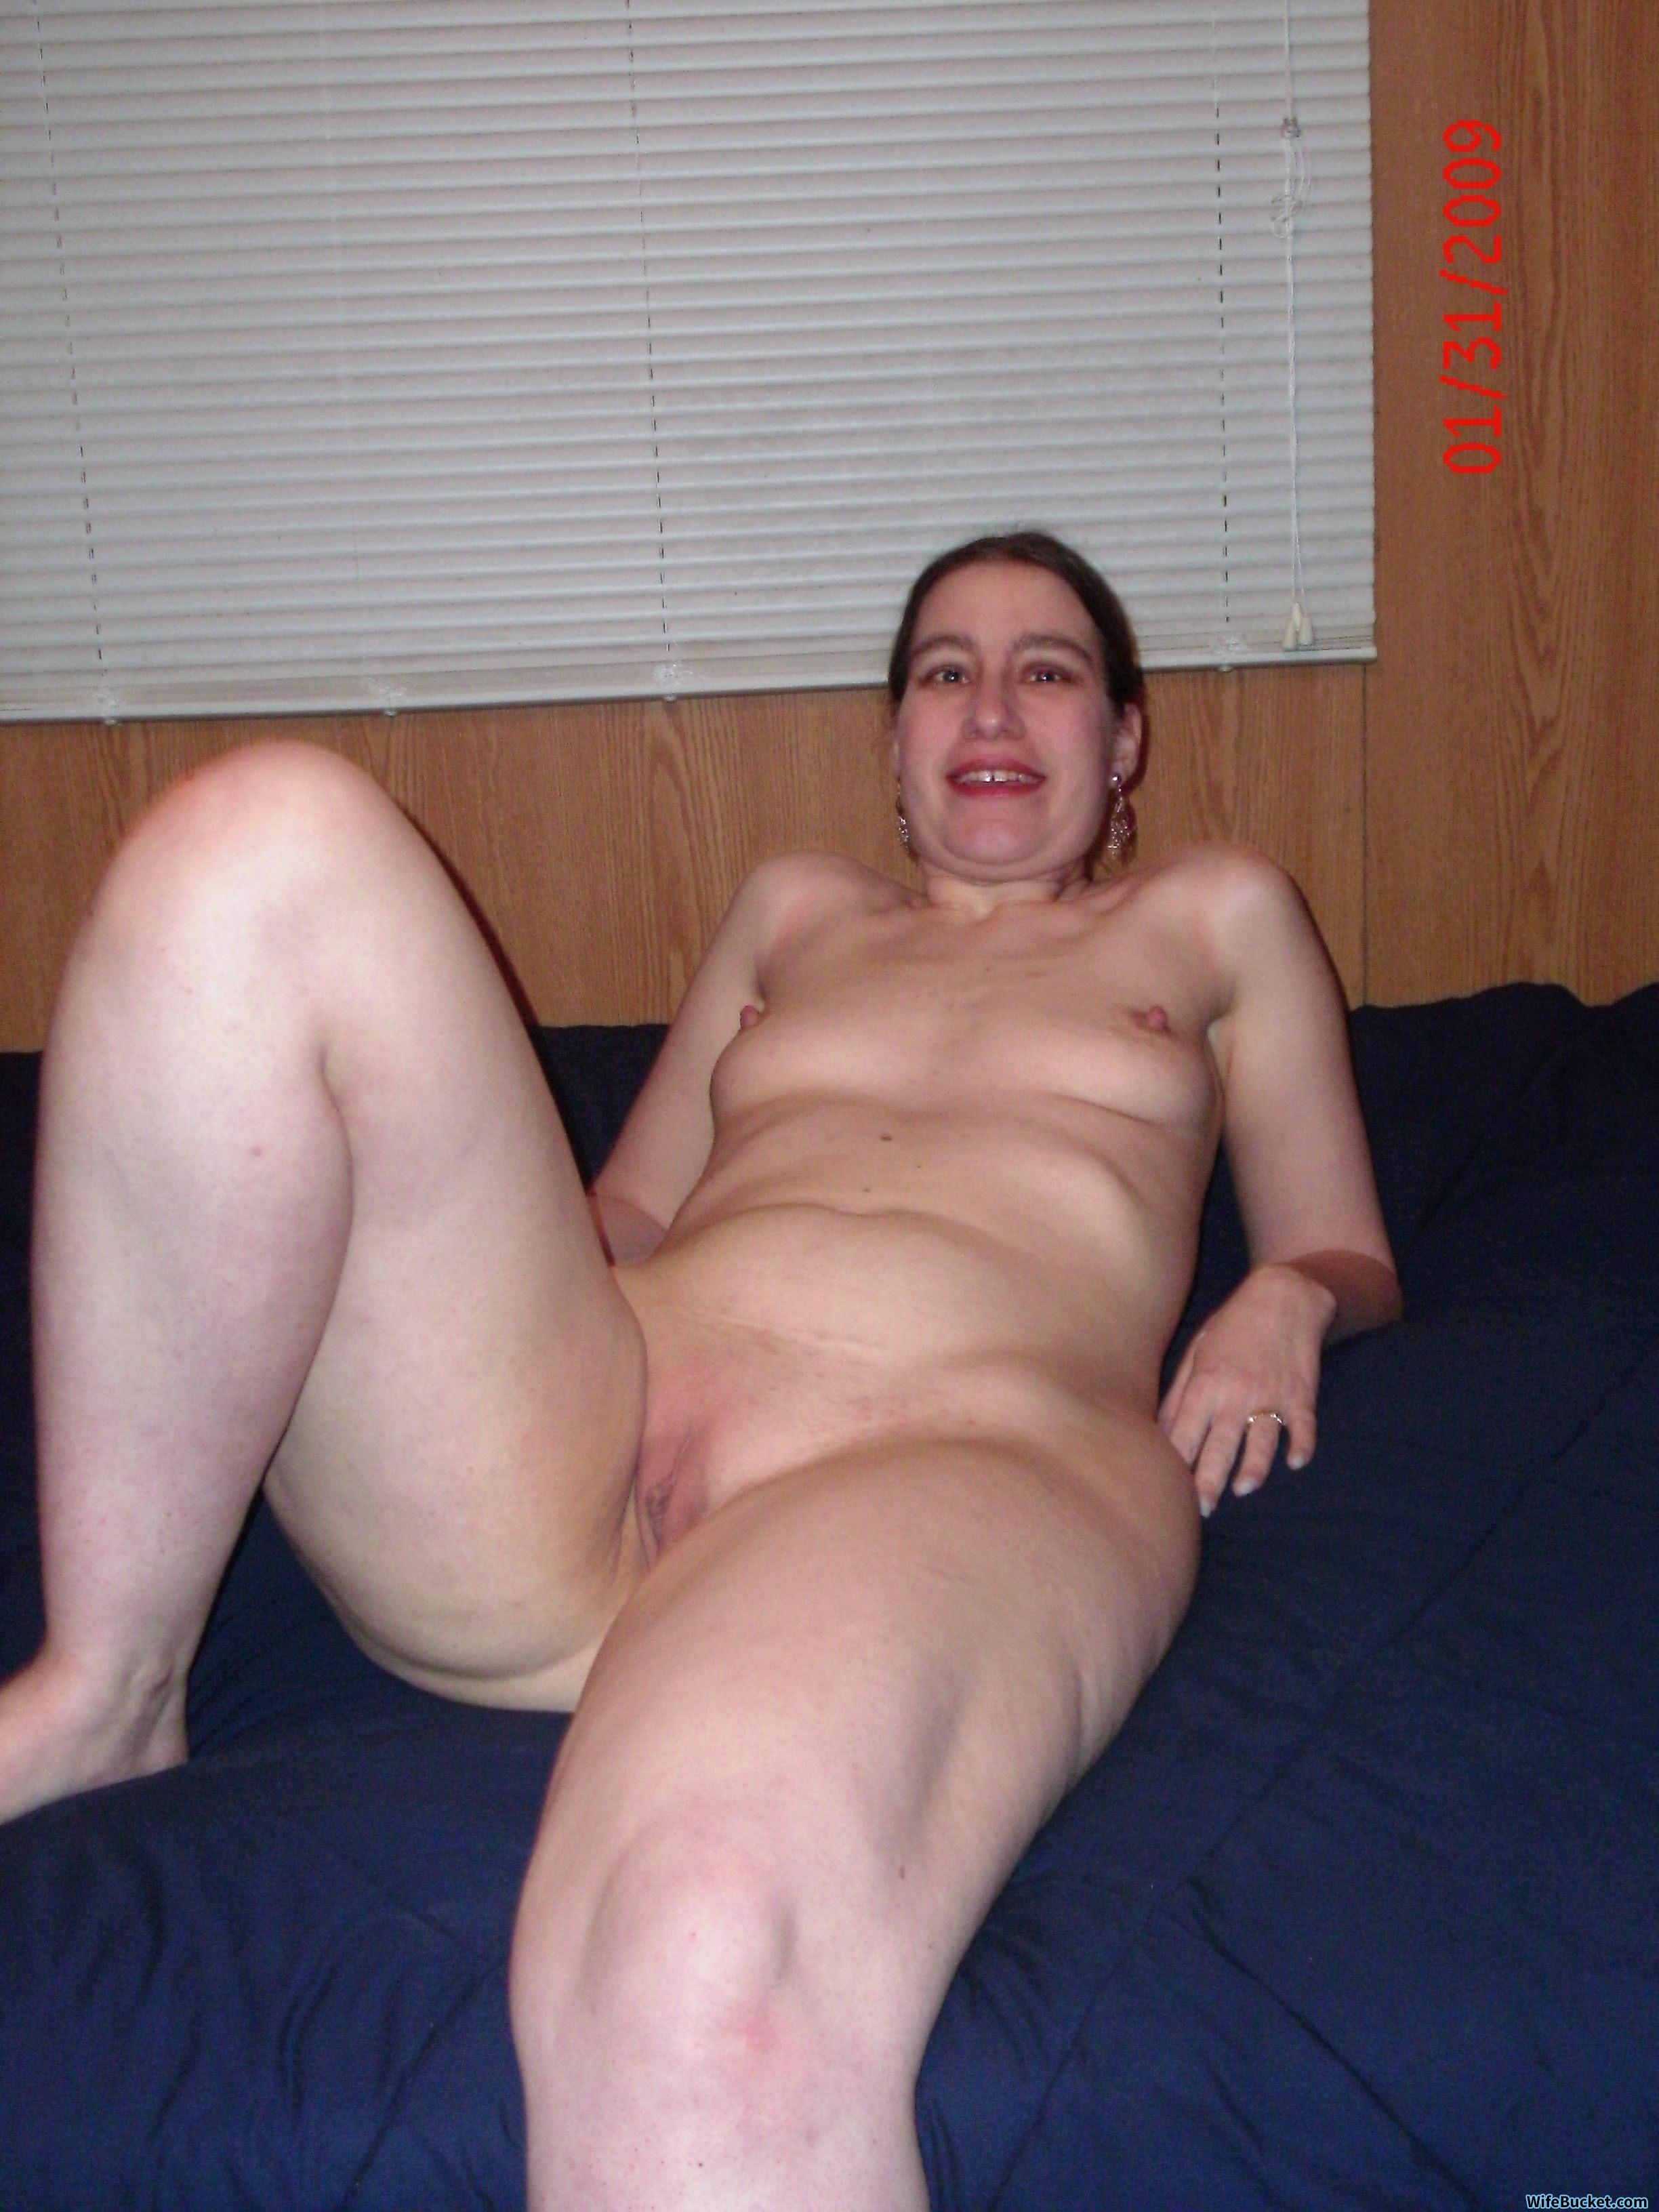 Amateur wife naked first time fun sized 2